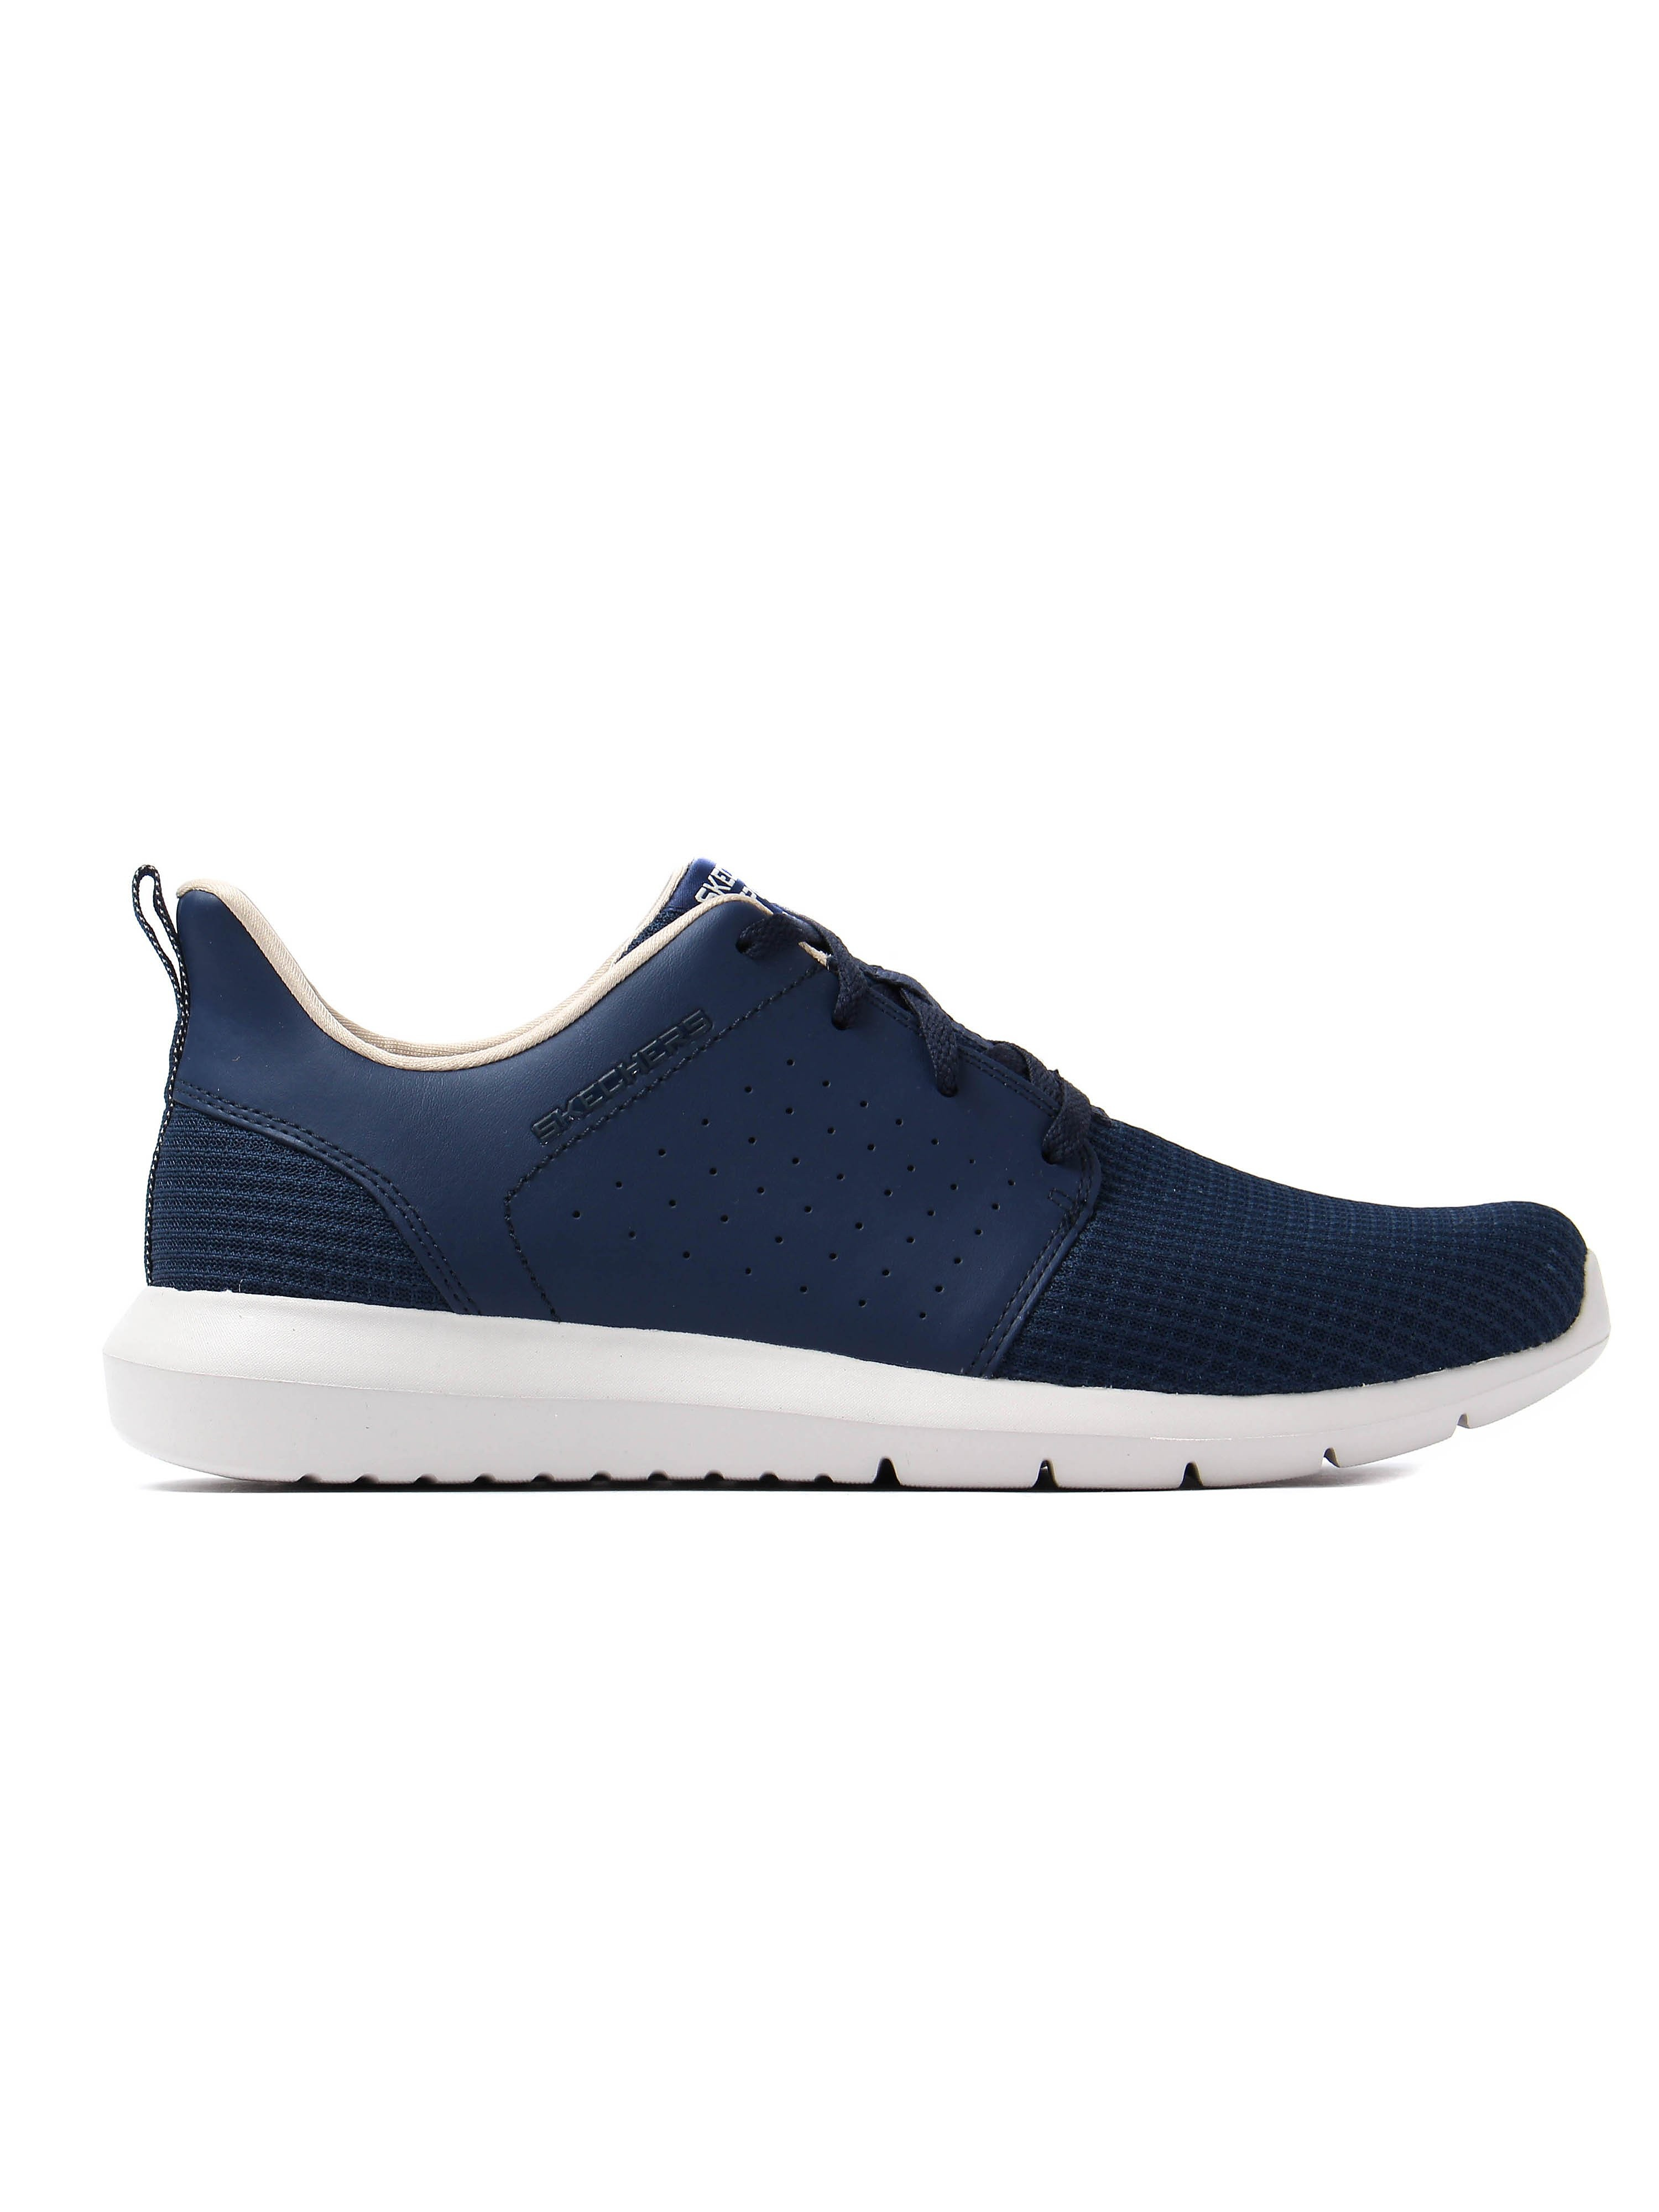 Skechers Men's Fore Flex Trainers - Navy